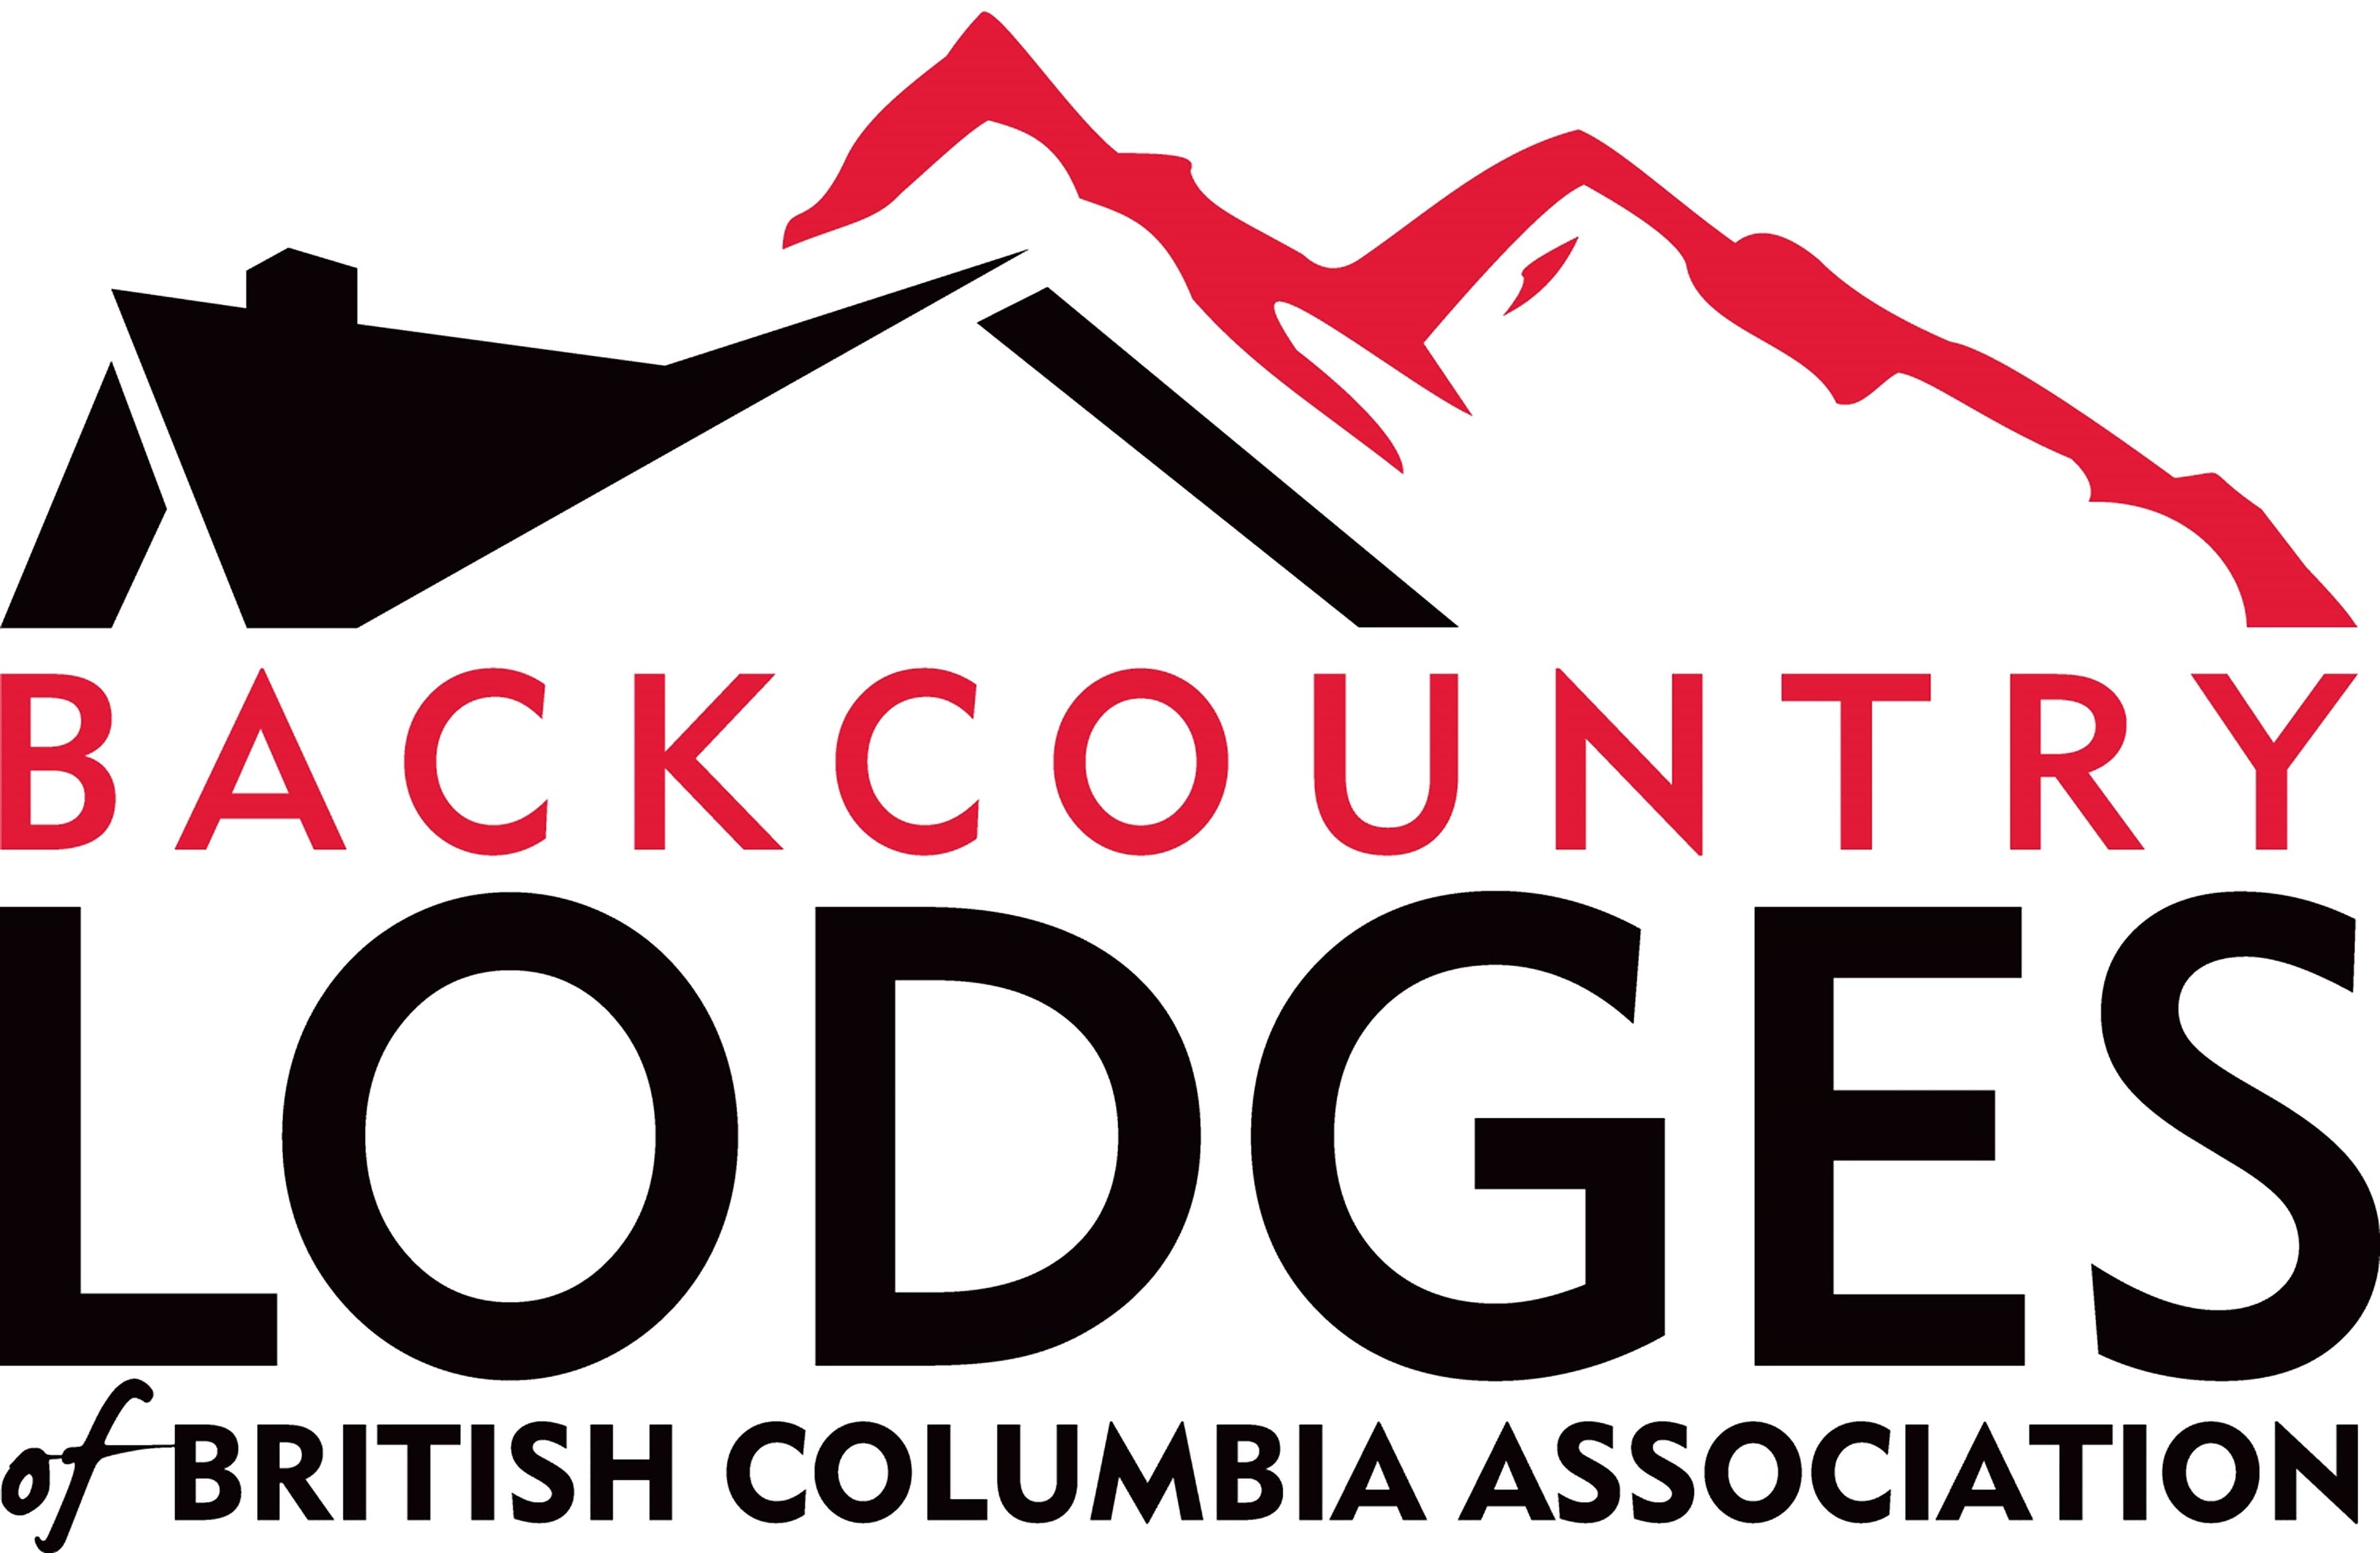 Backcountry lodges of BC logo